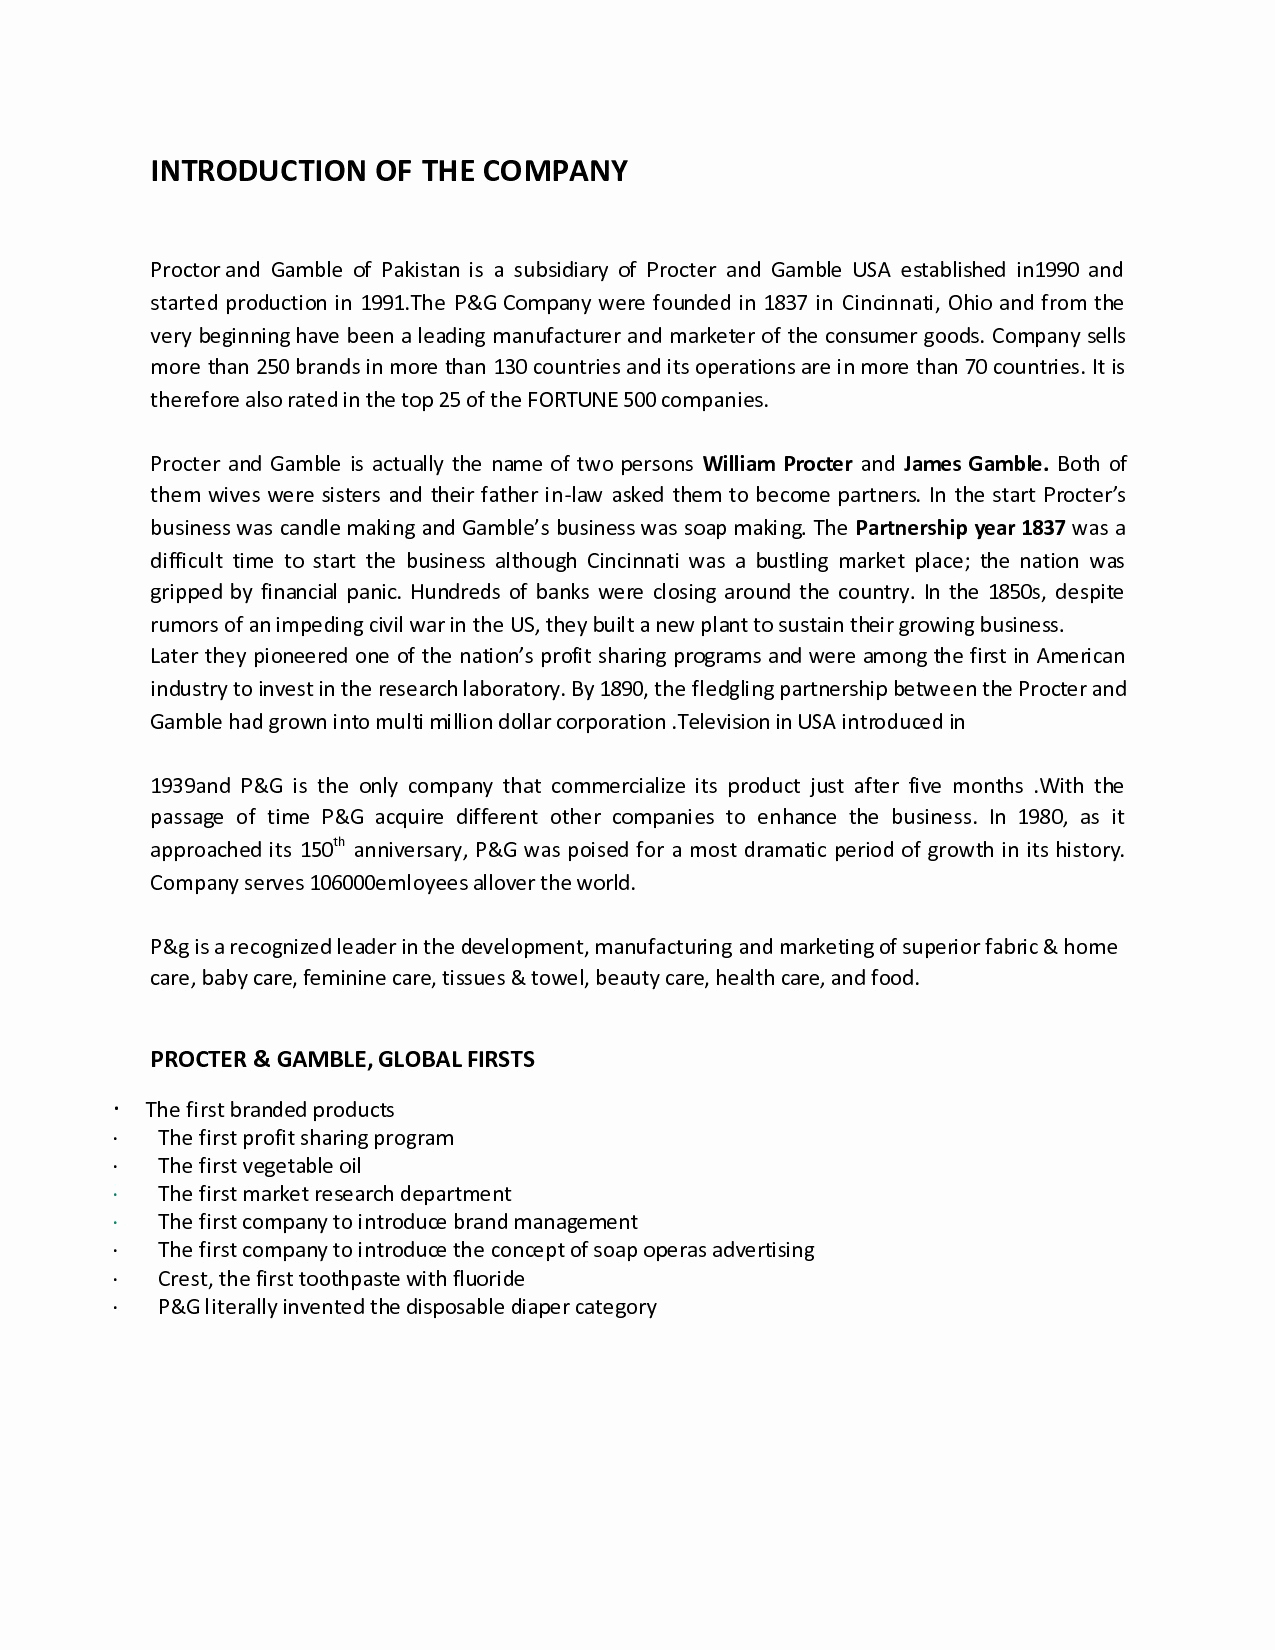 New Client Welcome Letter Template - Sample Email Cover Letter with Resume Unique Cover Letter Template